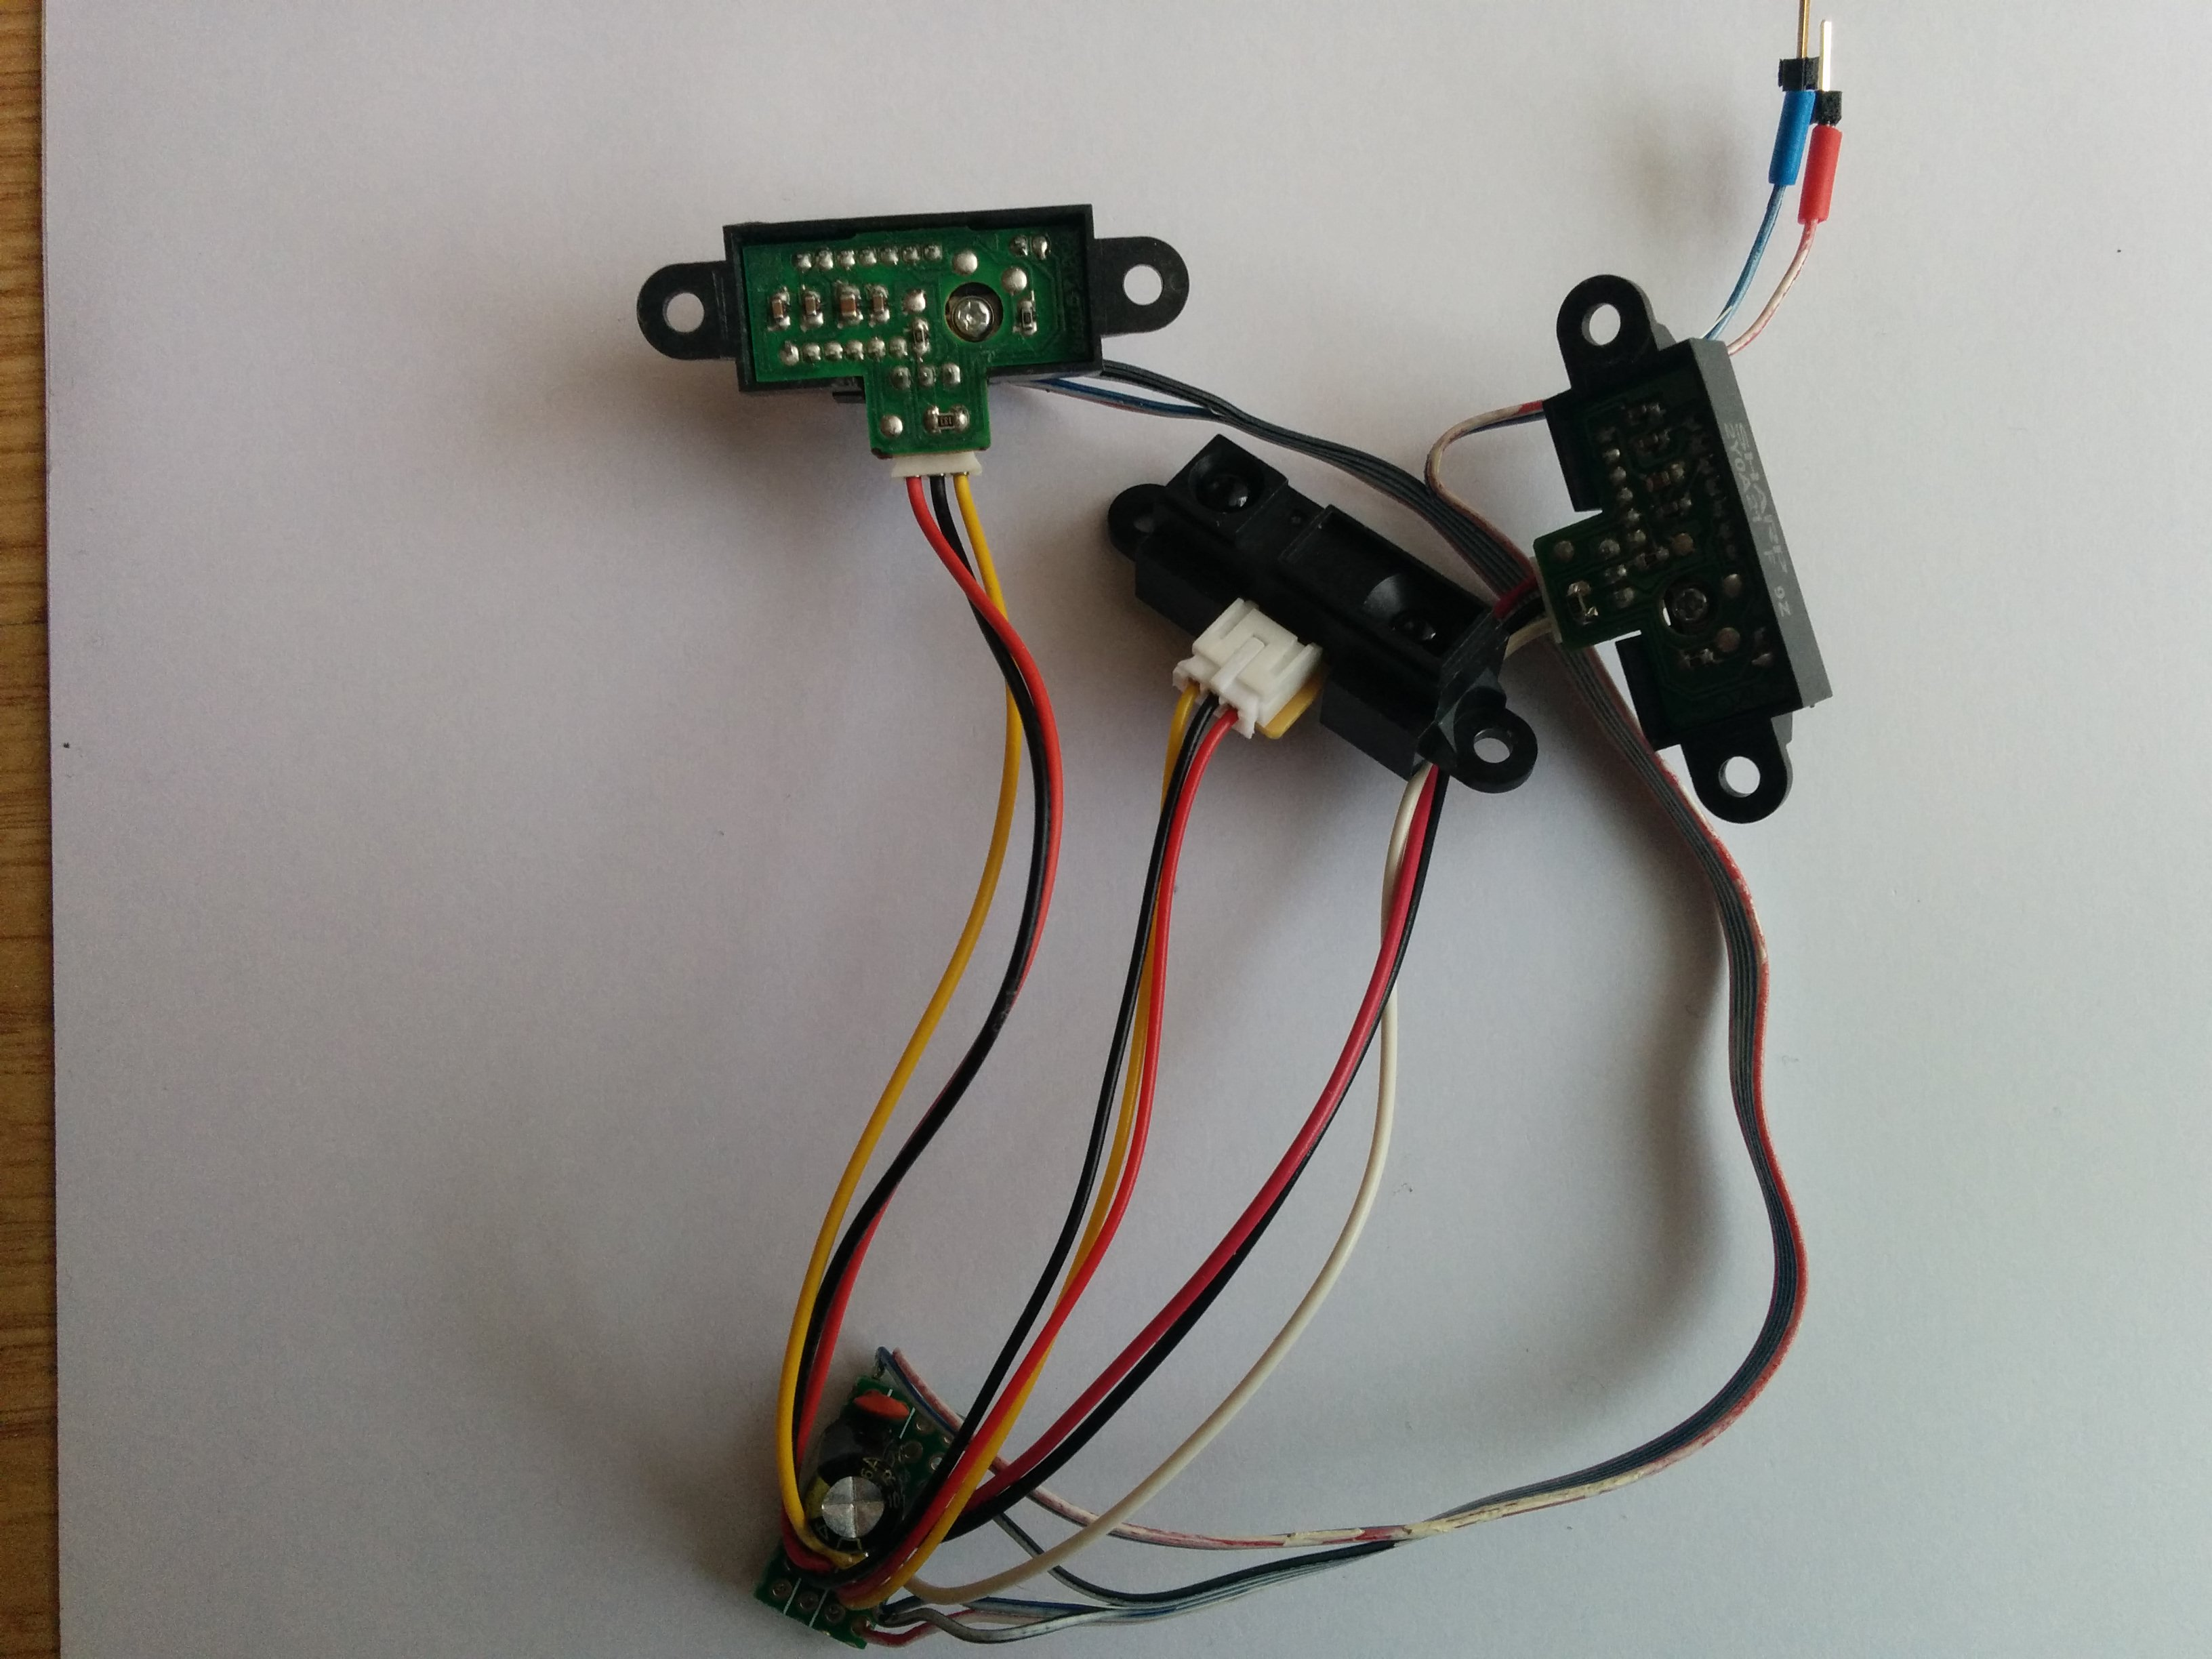 Picture of Connection of IR Sensors